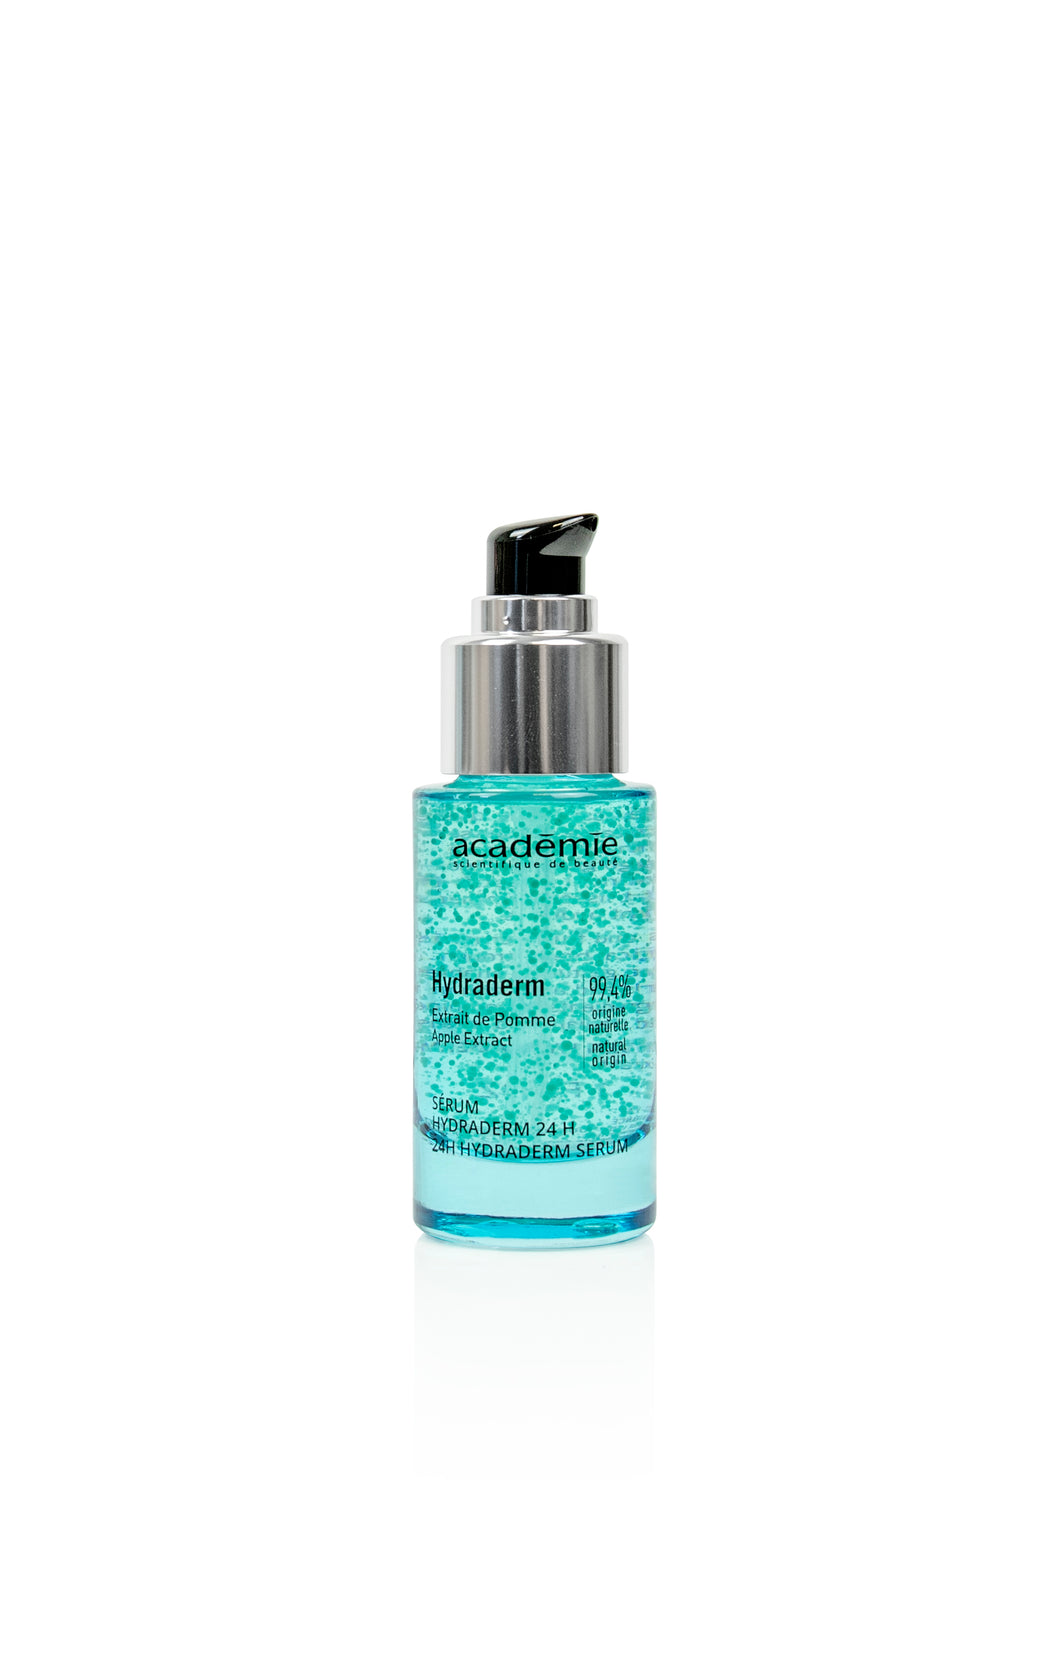 Académie - Serum Hydraderm 24H 30ml